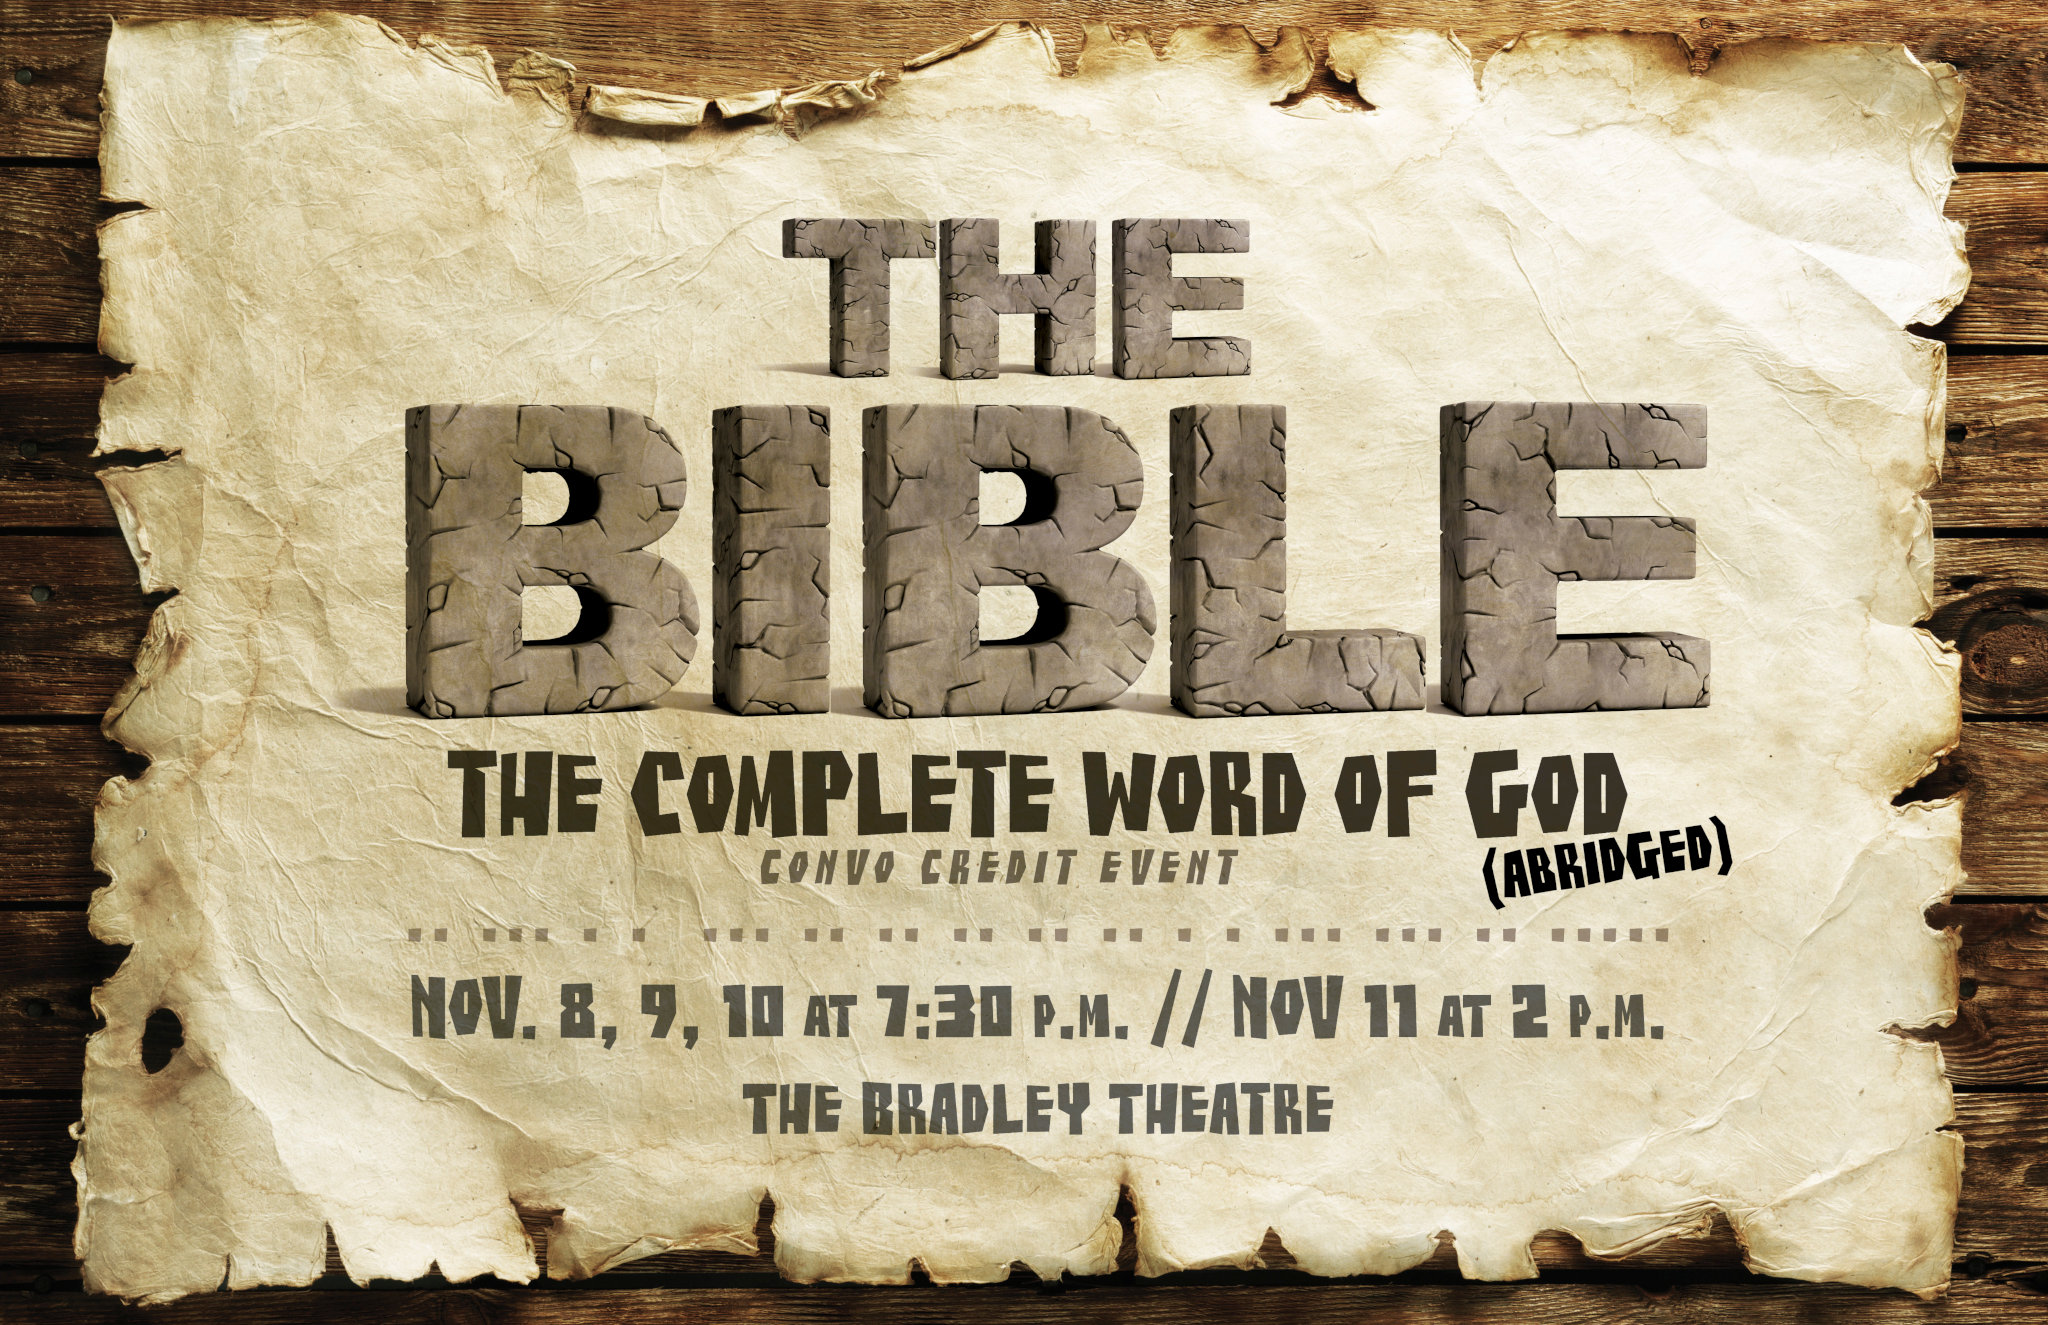 The Bible The Complete Word of God Abridged. Convo credit event. Nov. 8, 9, 10 at 7:30 p.m., Nov. 11 at 2 p.m. The Bradley Theatre